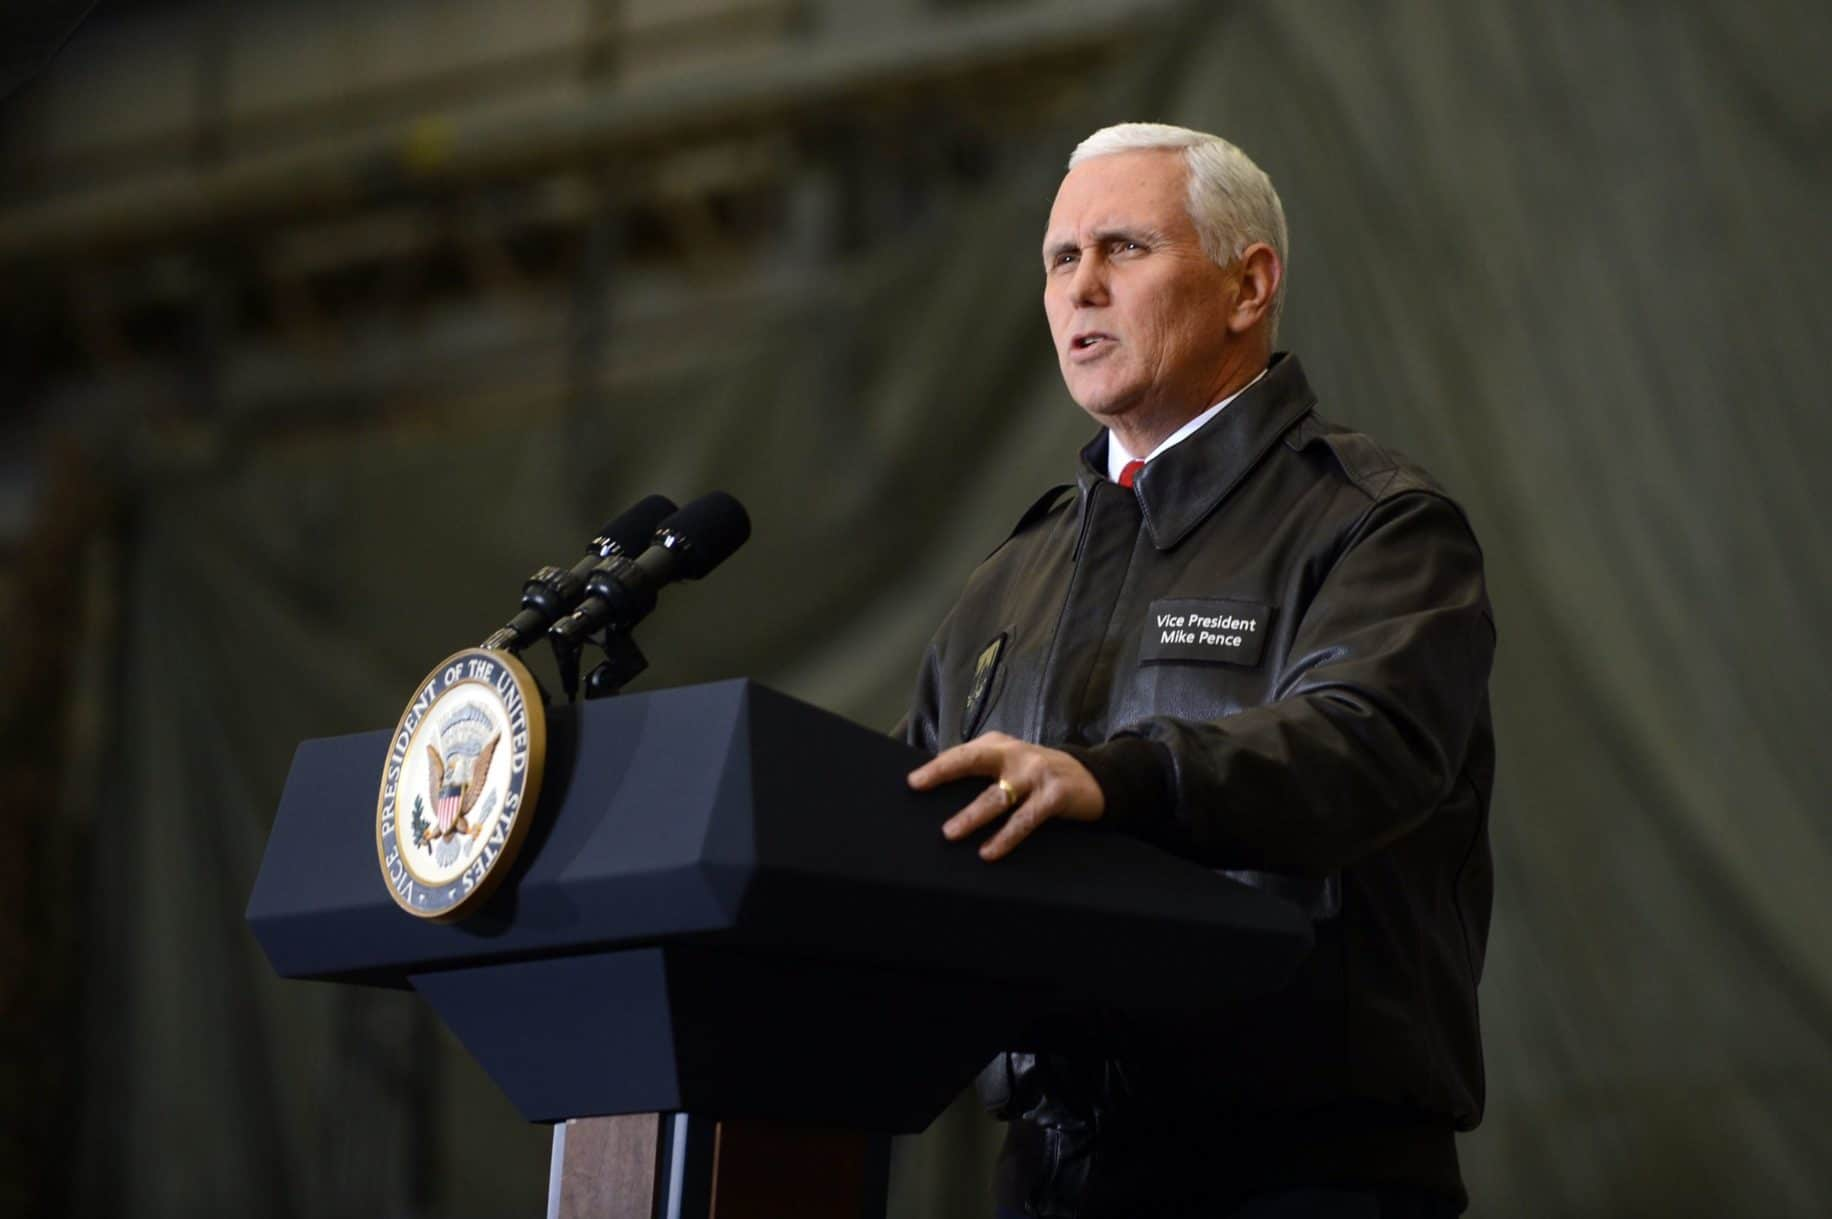 Vice President Mike Pence speaks during a visit to Bagram Airfield in Afghanistan in 2017.